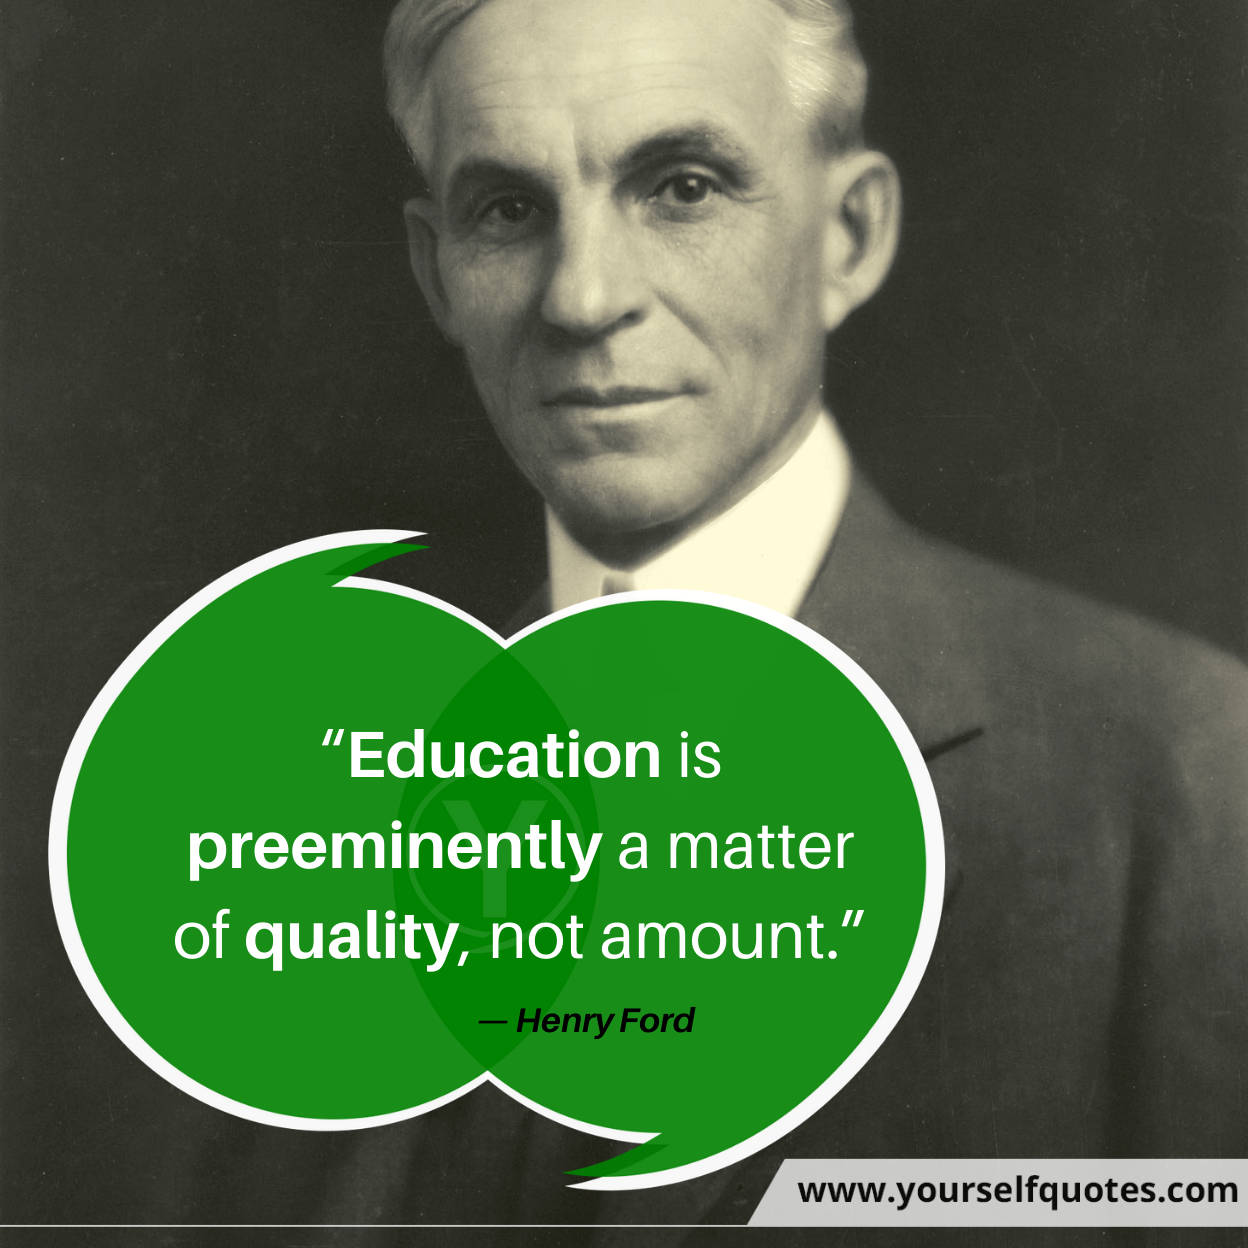 Quotes From Henry Ford On Education